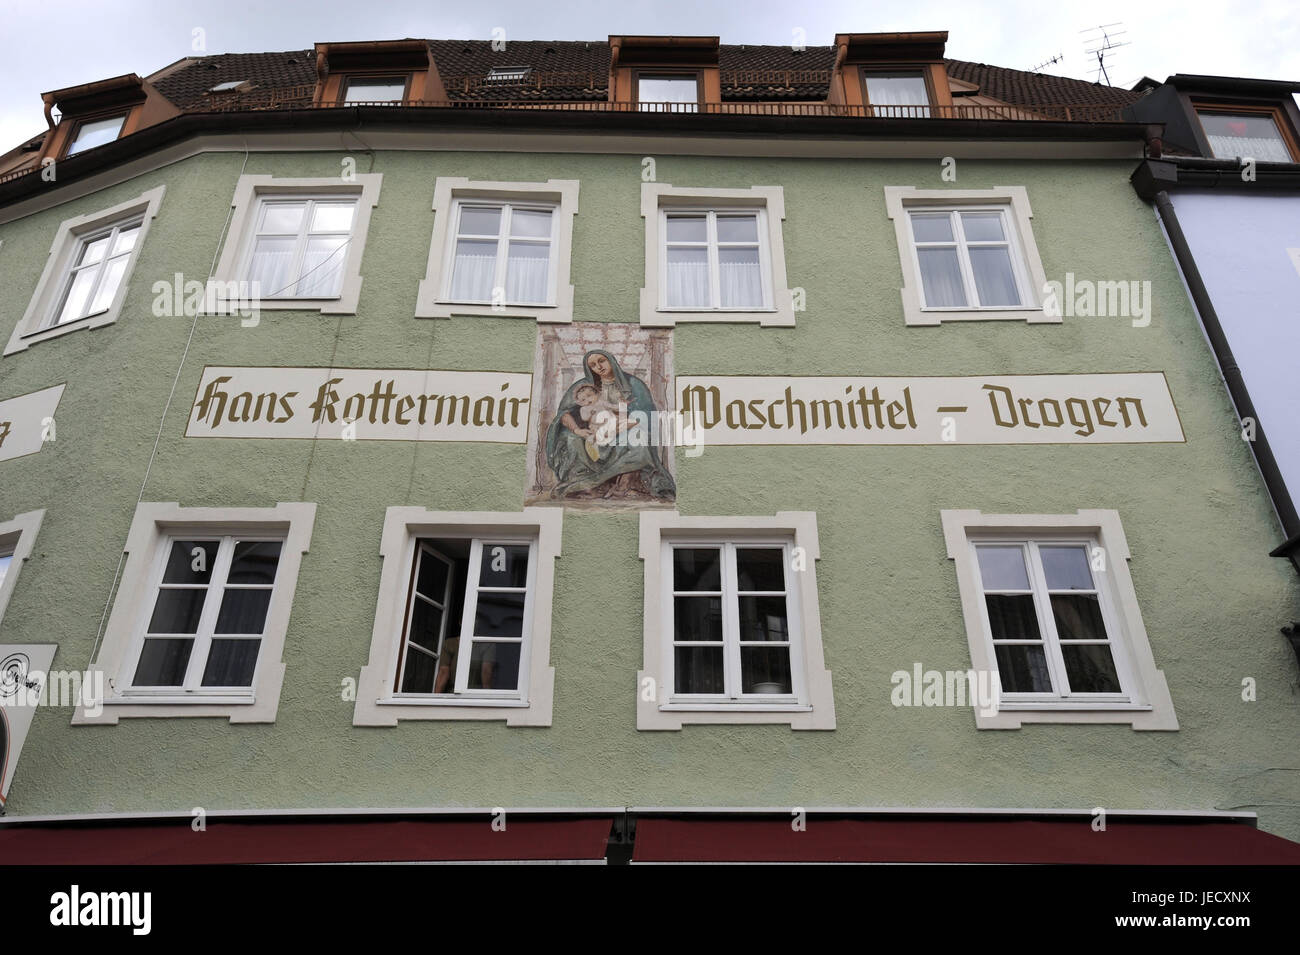 Germany, Bavaria, to feet, city centre, house facade, historically, saint's picture, label, detergent - drugs, Stock Photo